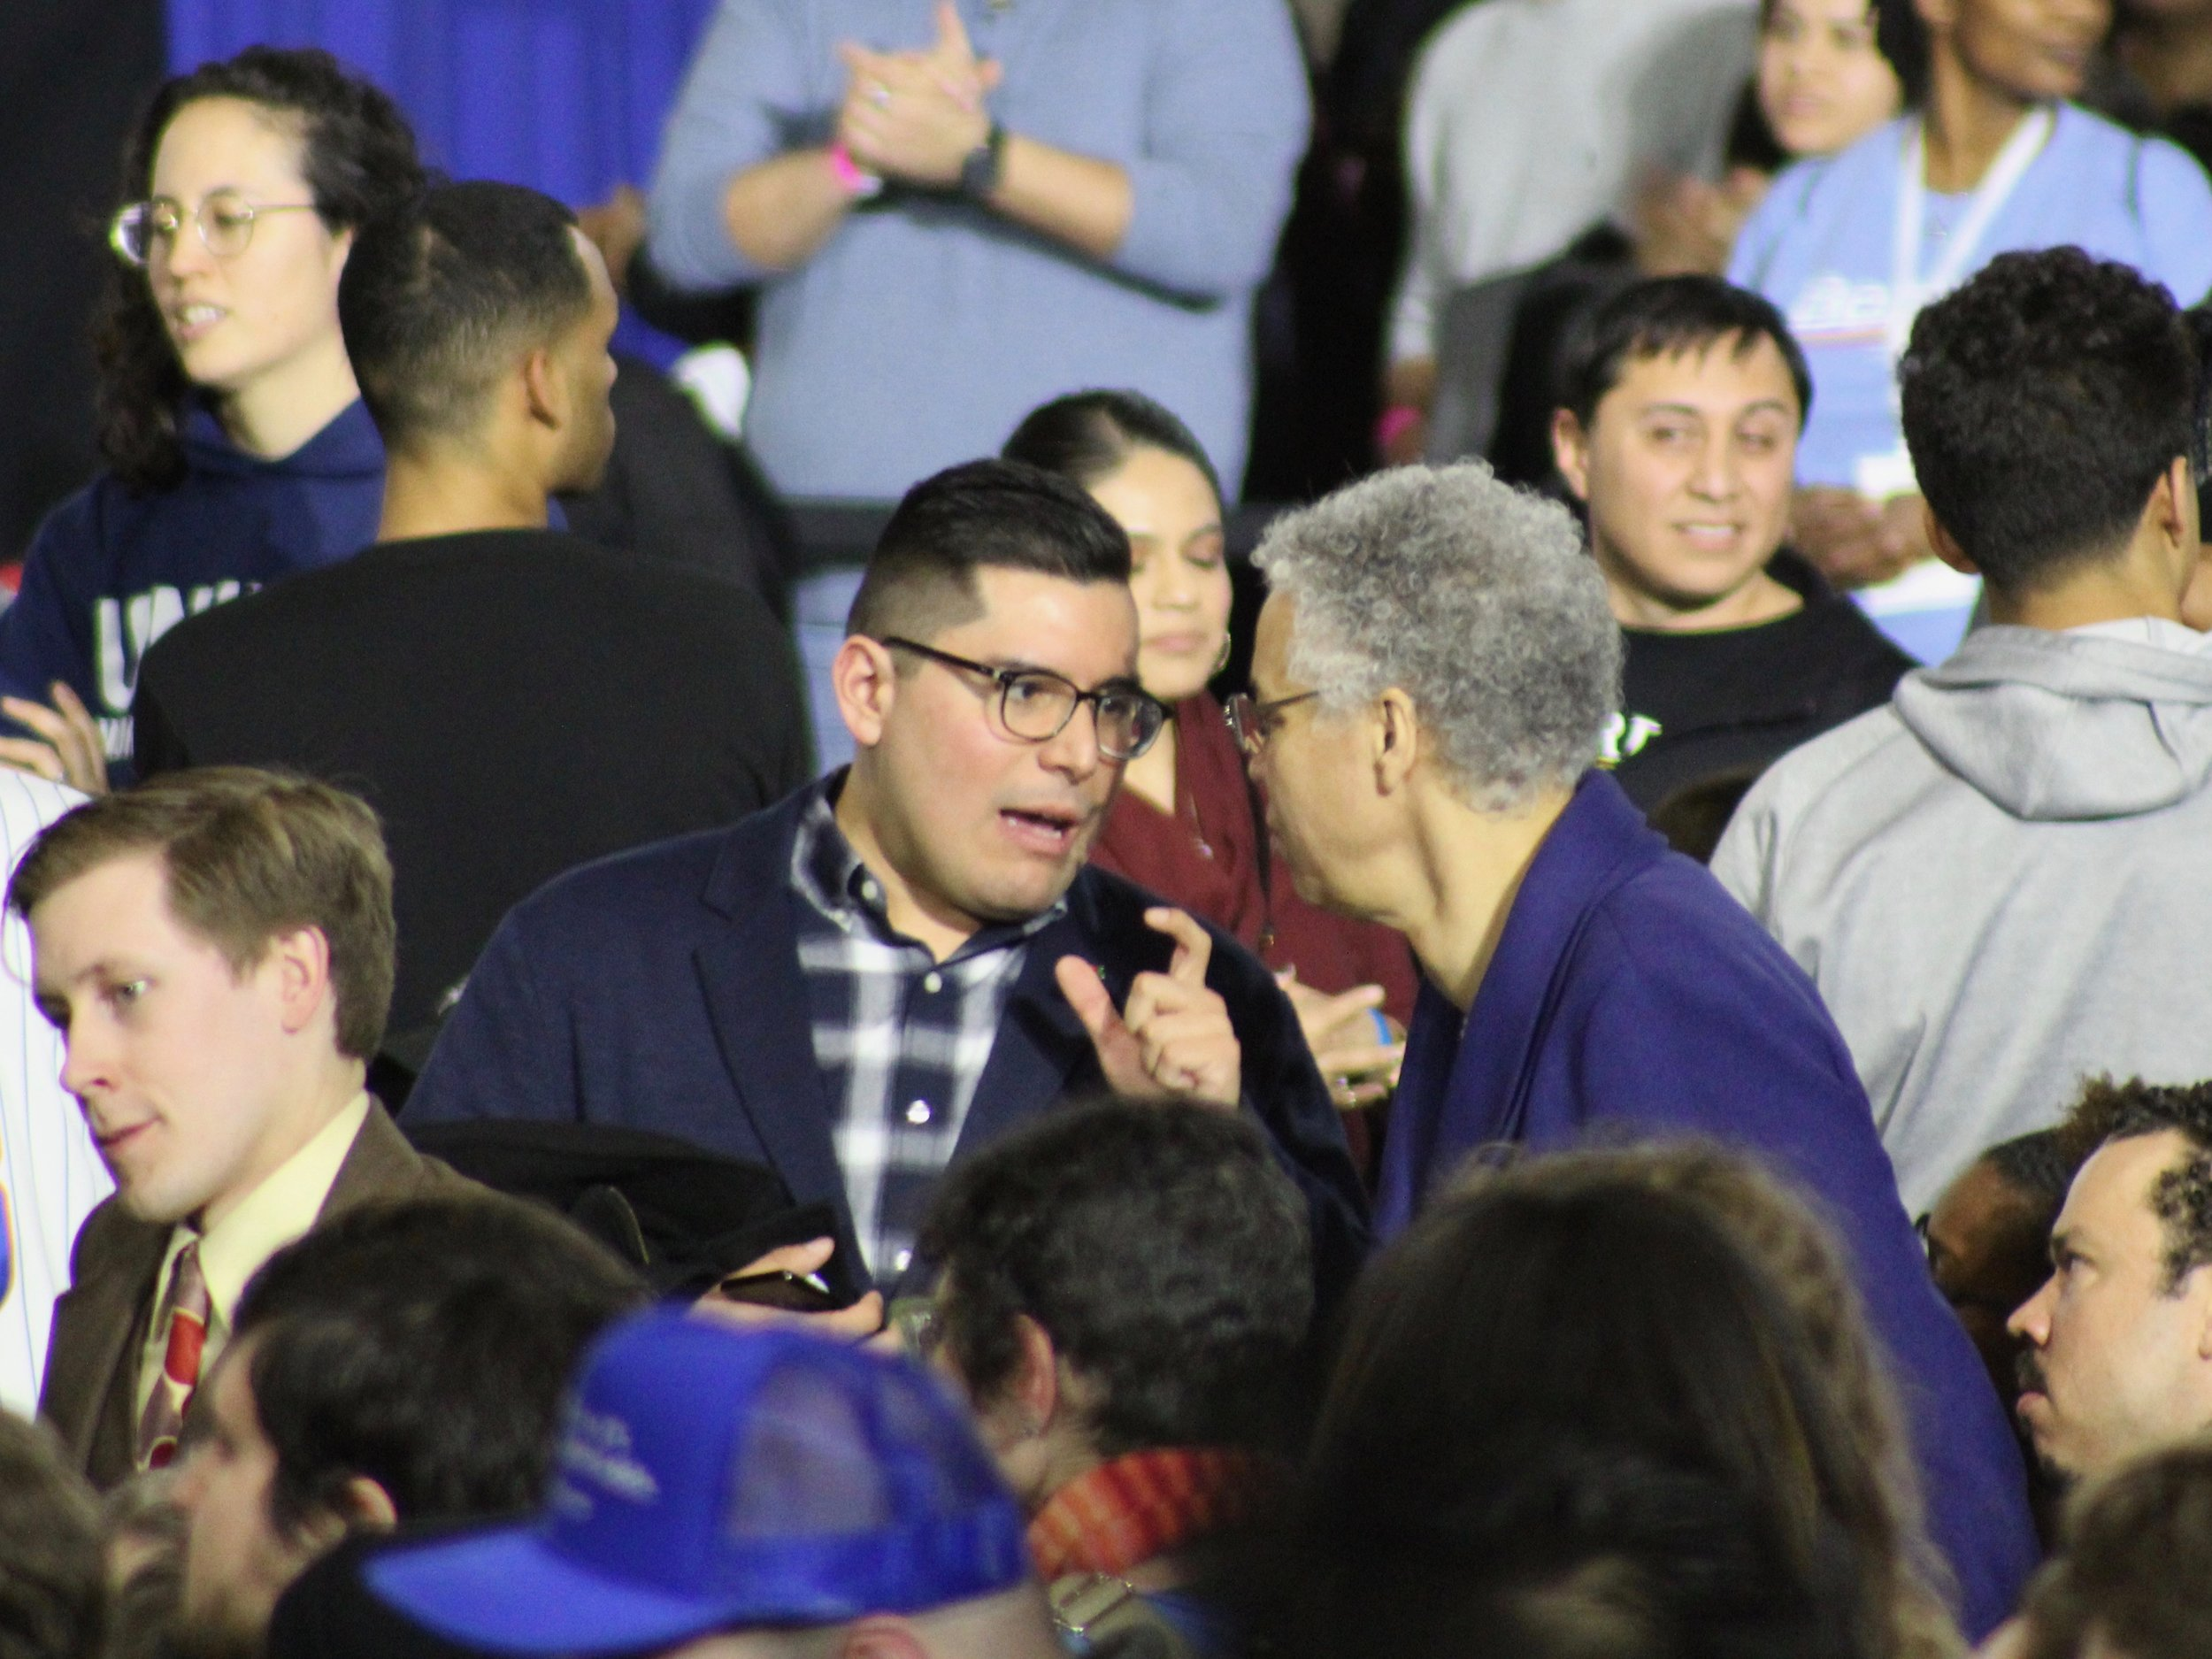 Chicago Alderman Carlos Ramirez-Rosa and Cook County Board President Toni Preckwinkle talk at a Bernie Sanders rally in Chicago earlier this year. (One Illinois/Ted Cox)